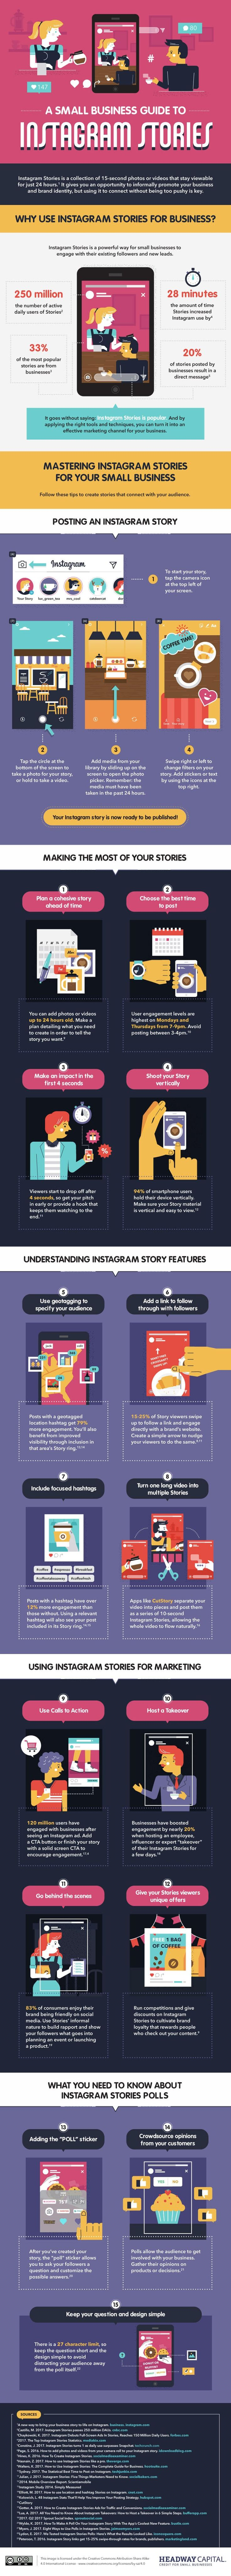 How to Use Instagram Stories: The Complete Guide for Brands